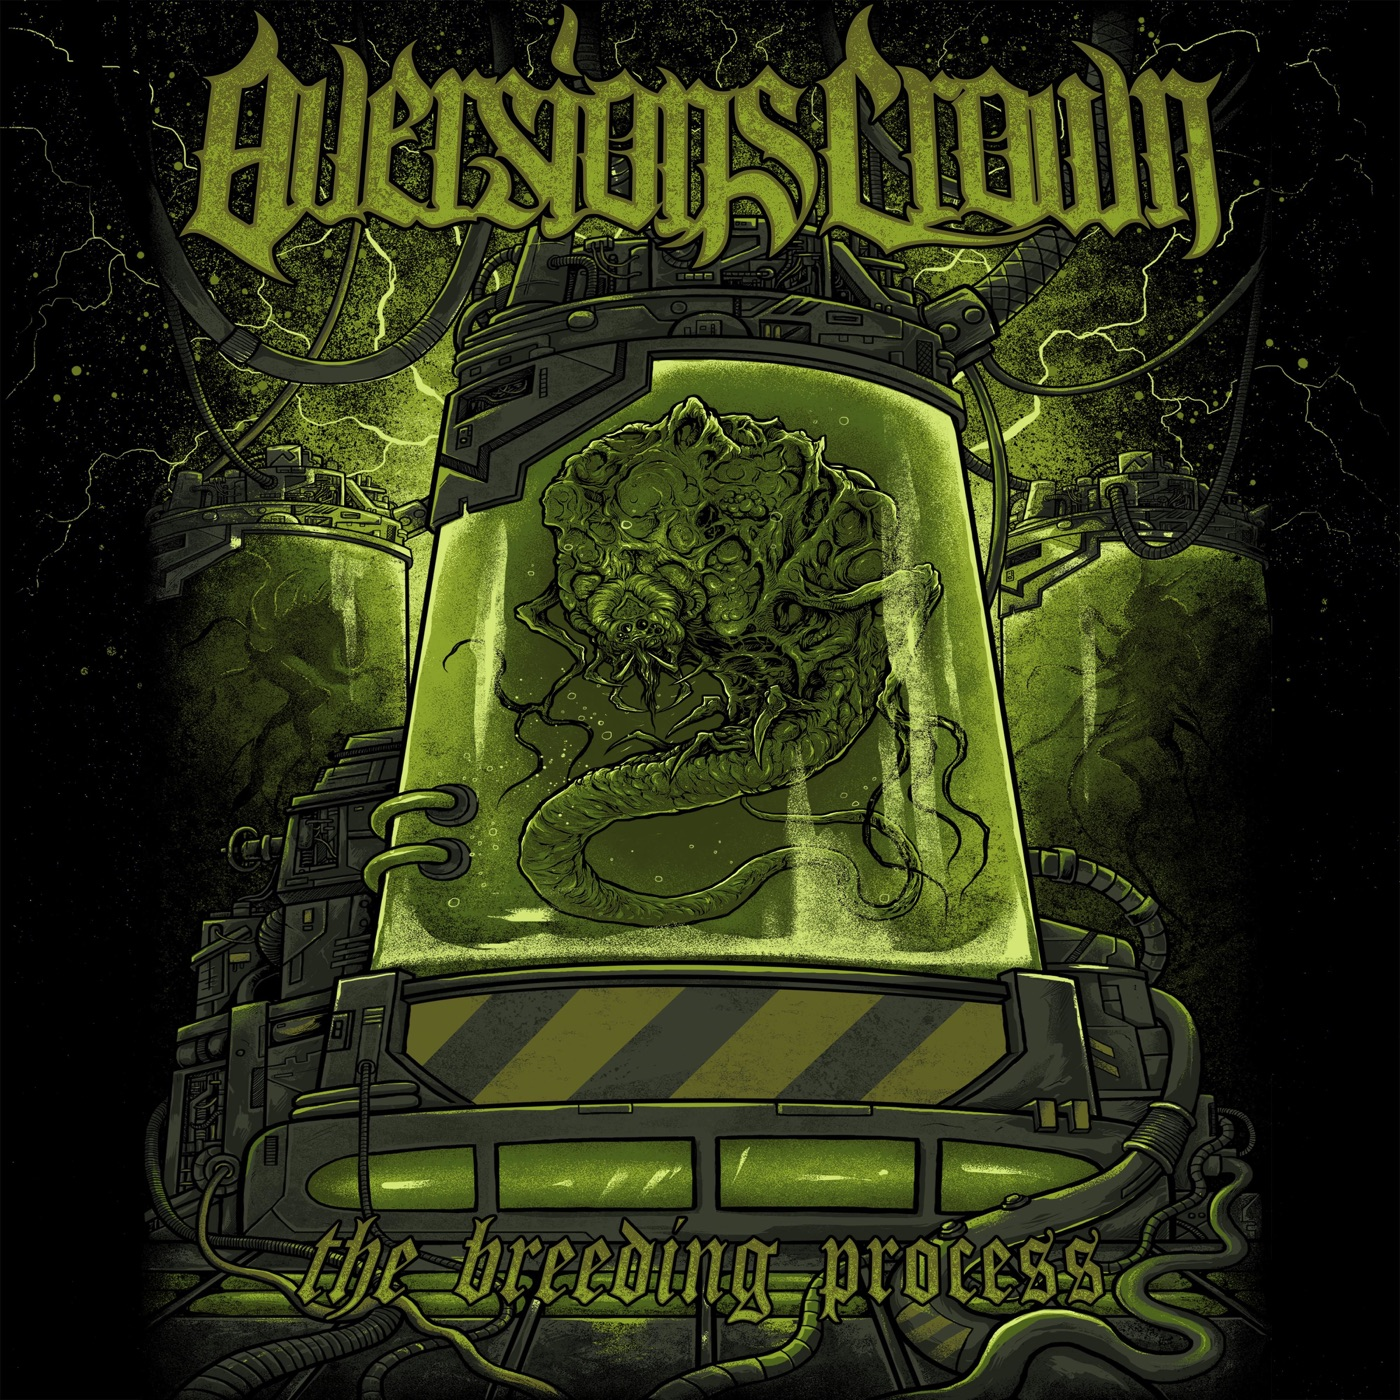 Aversions Crown - The Breeding Process [Single] (2018)